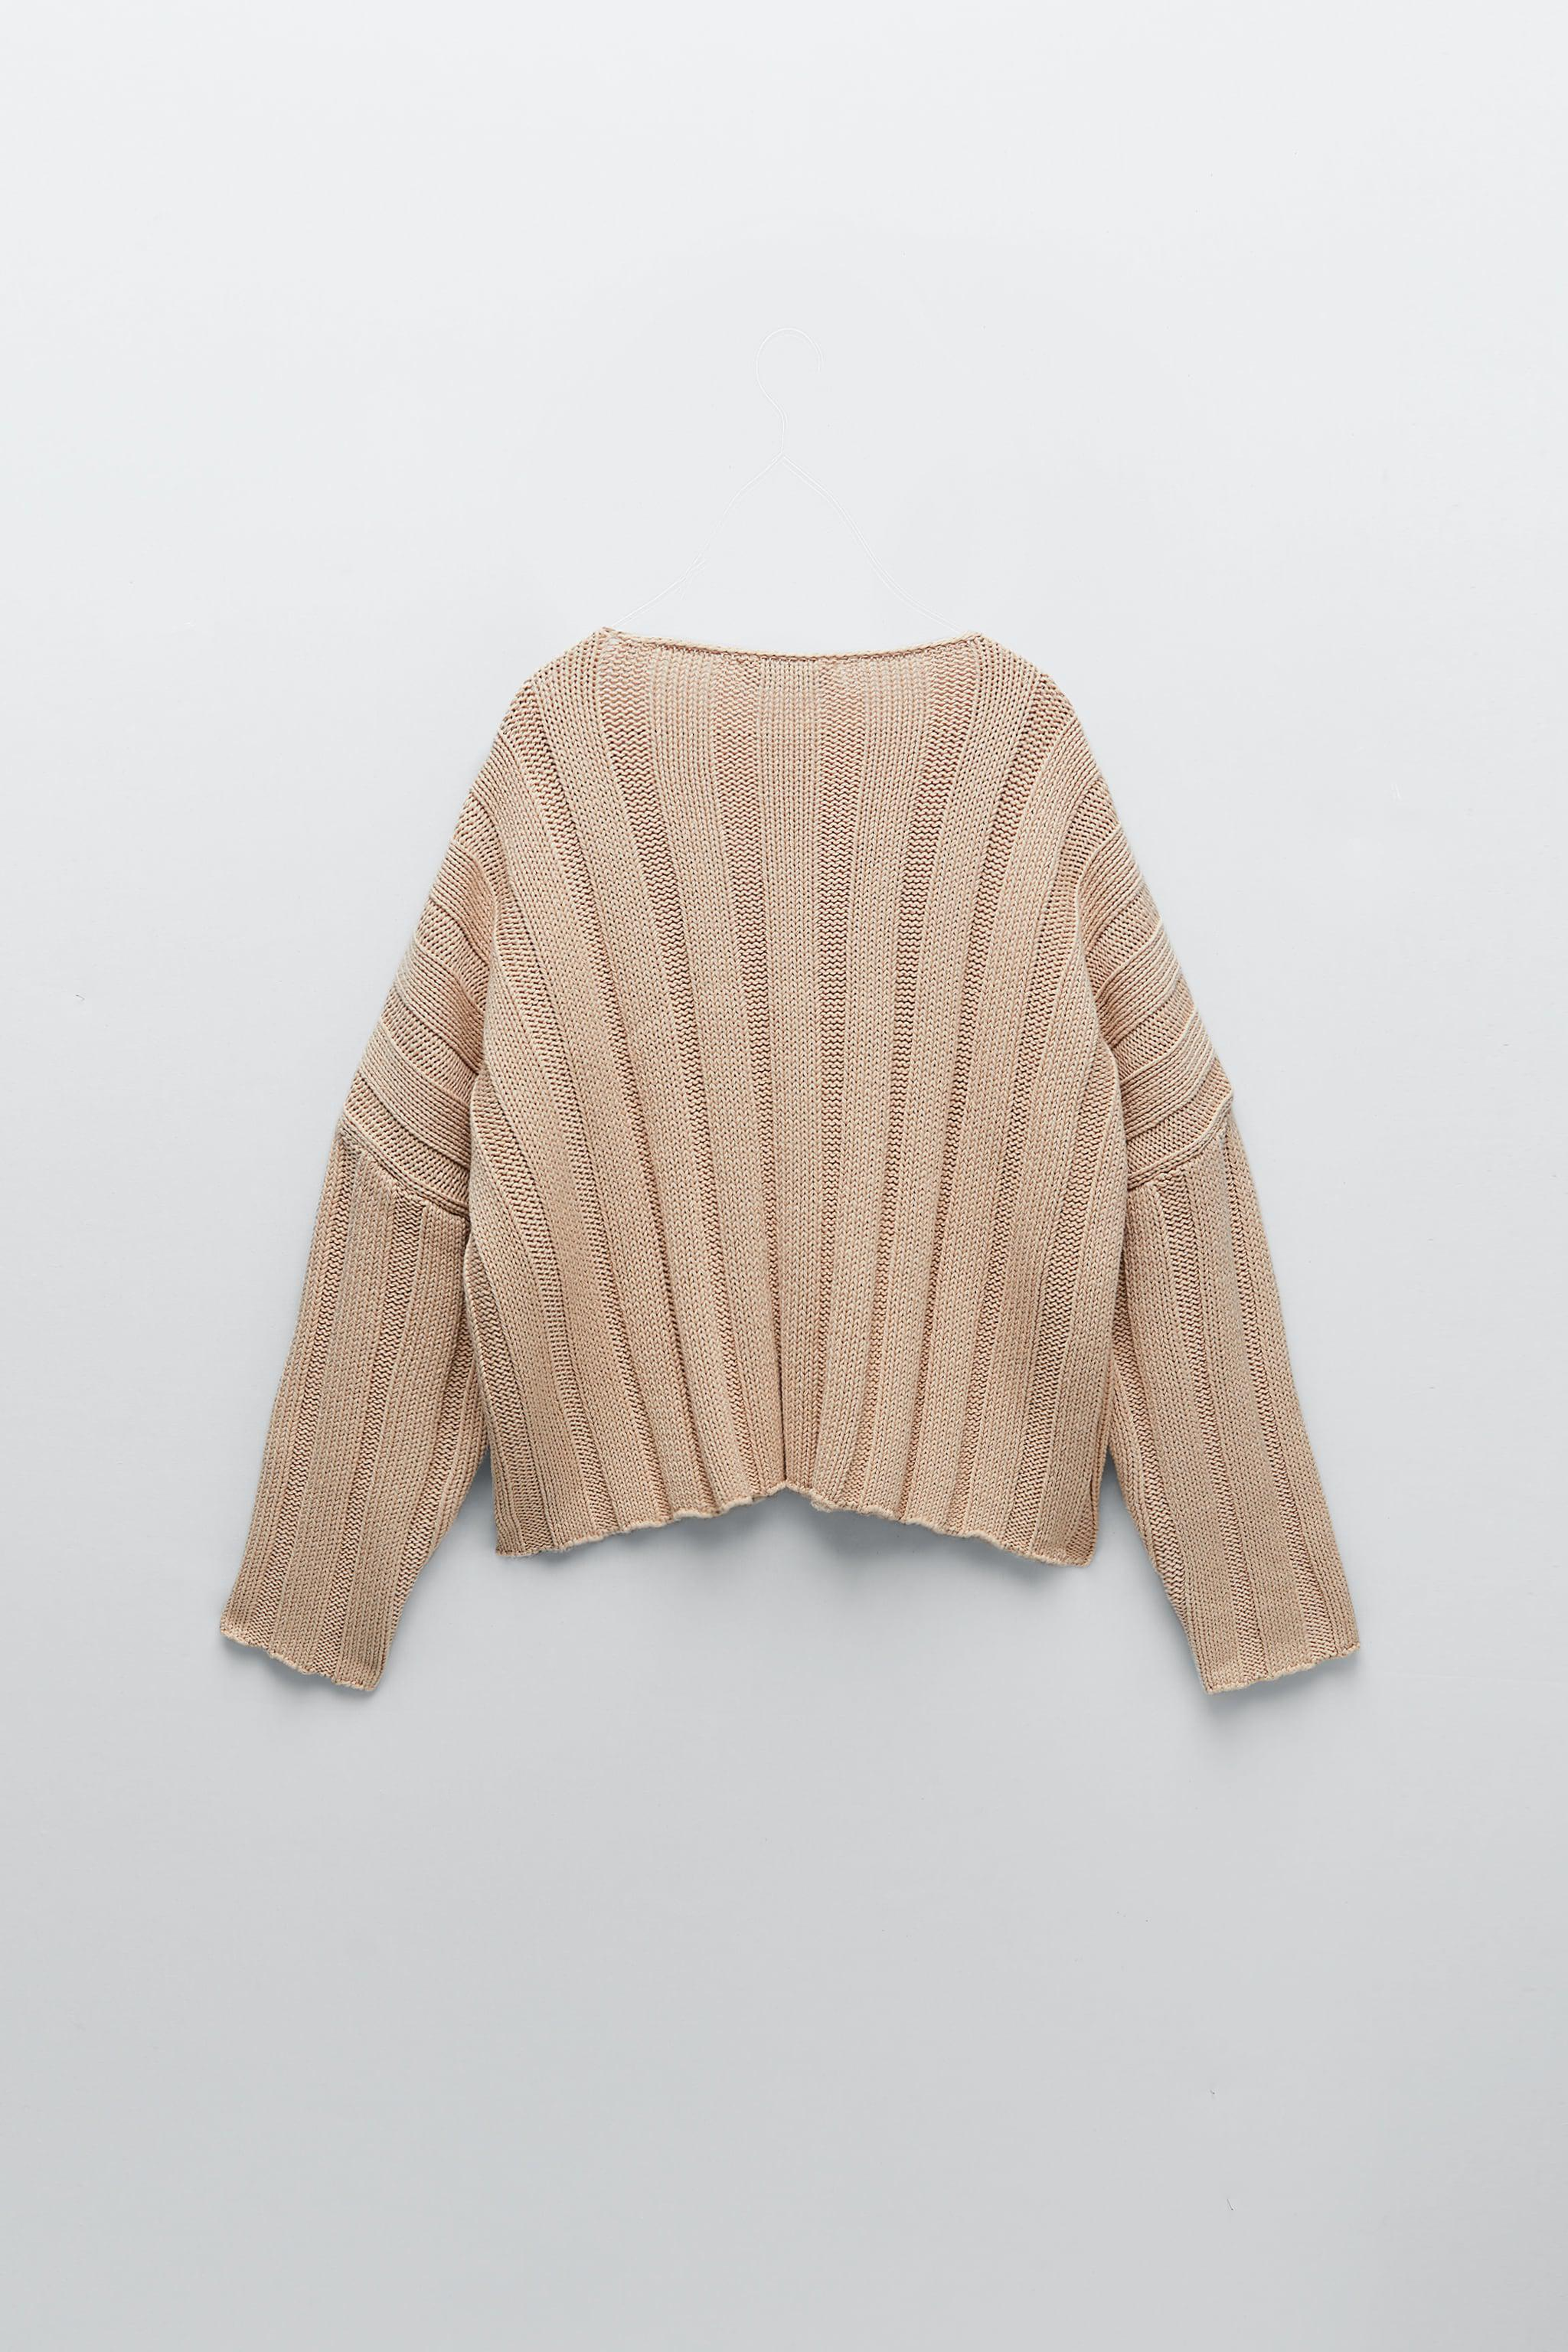 RIBBED KNIT SWEATER 5